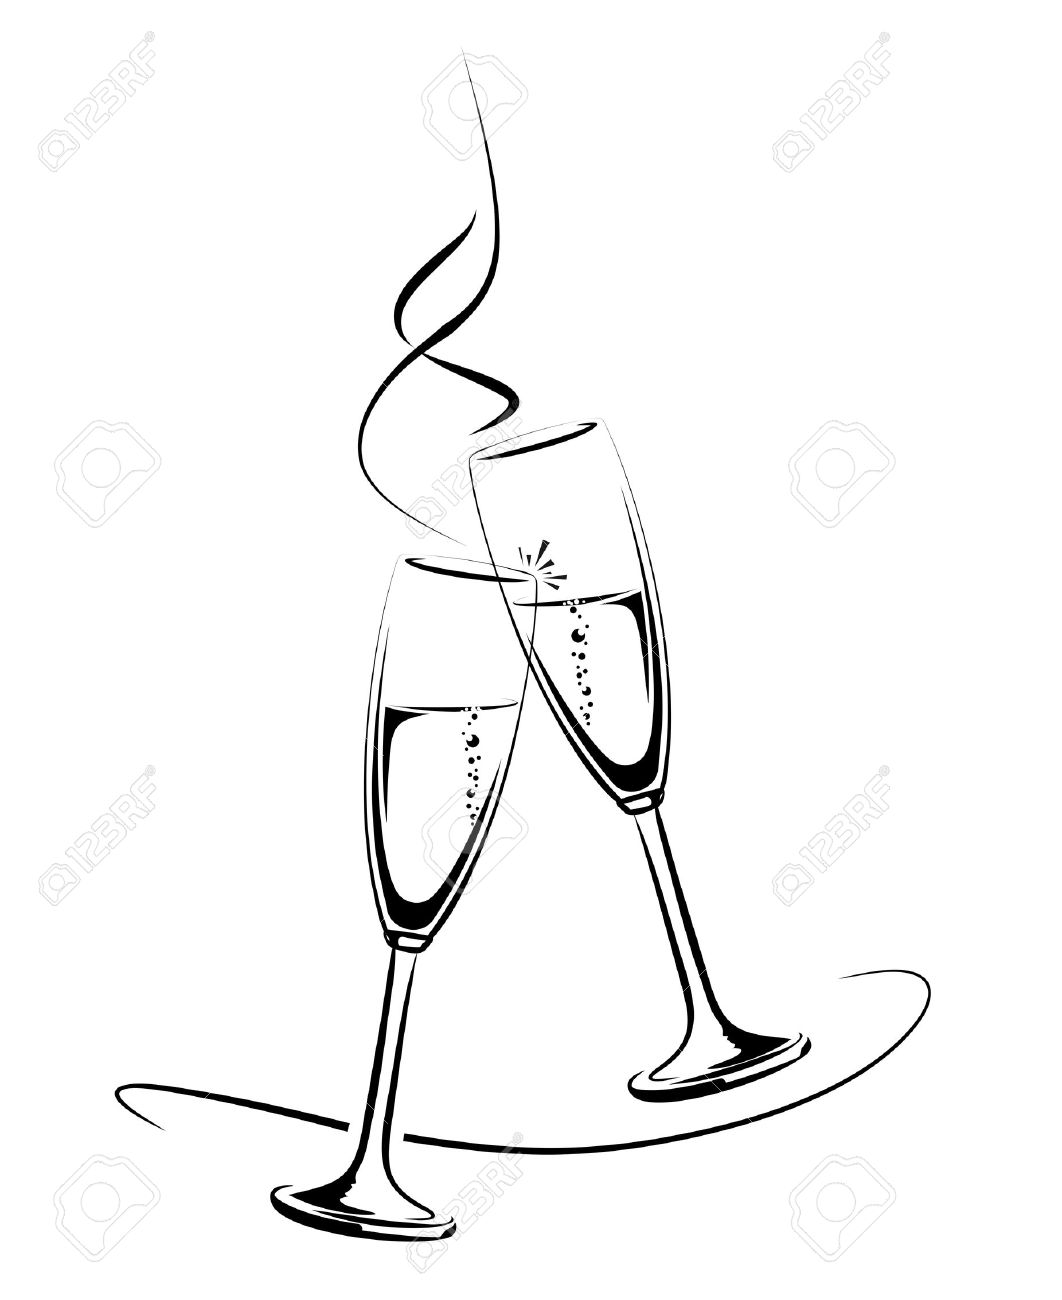 hight resolution of illustration of clinking champagne glasses for a festive occasion illustration